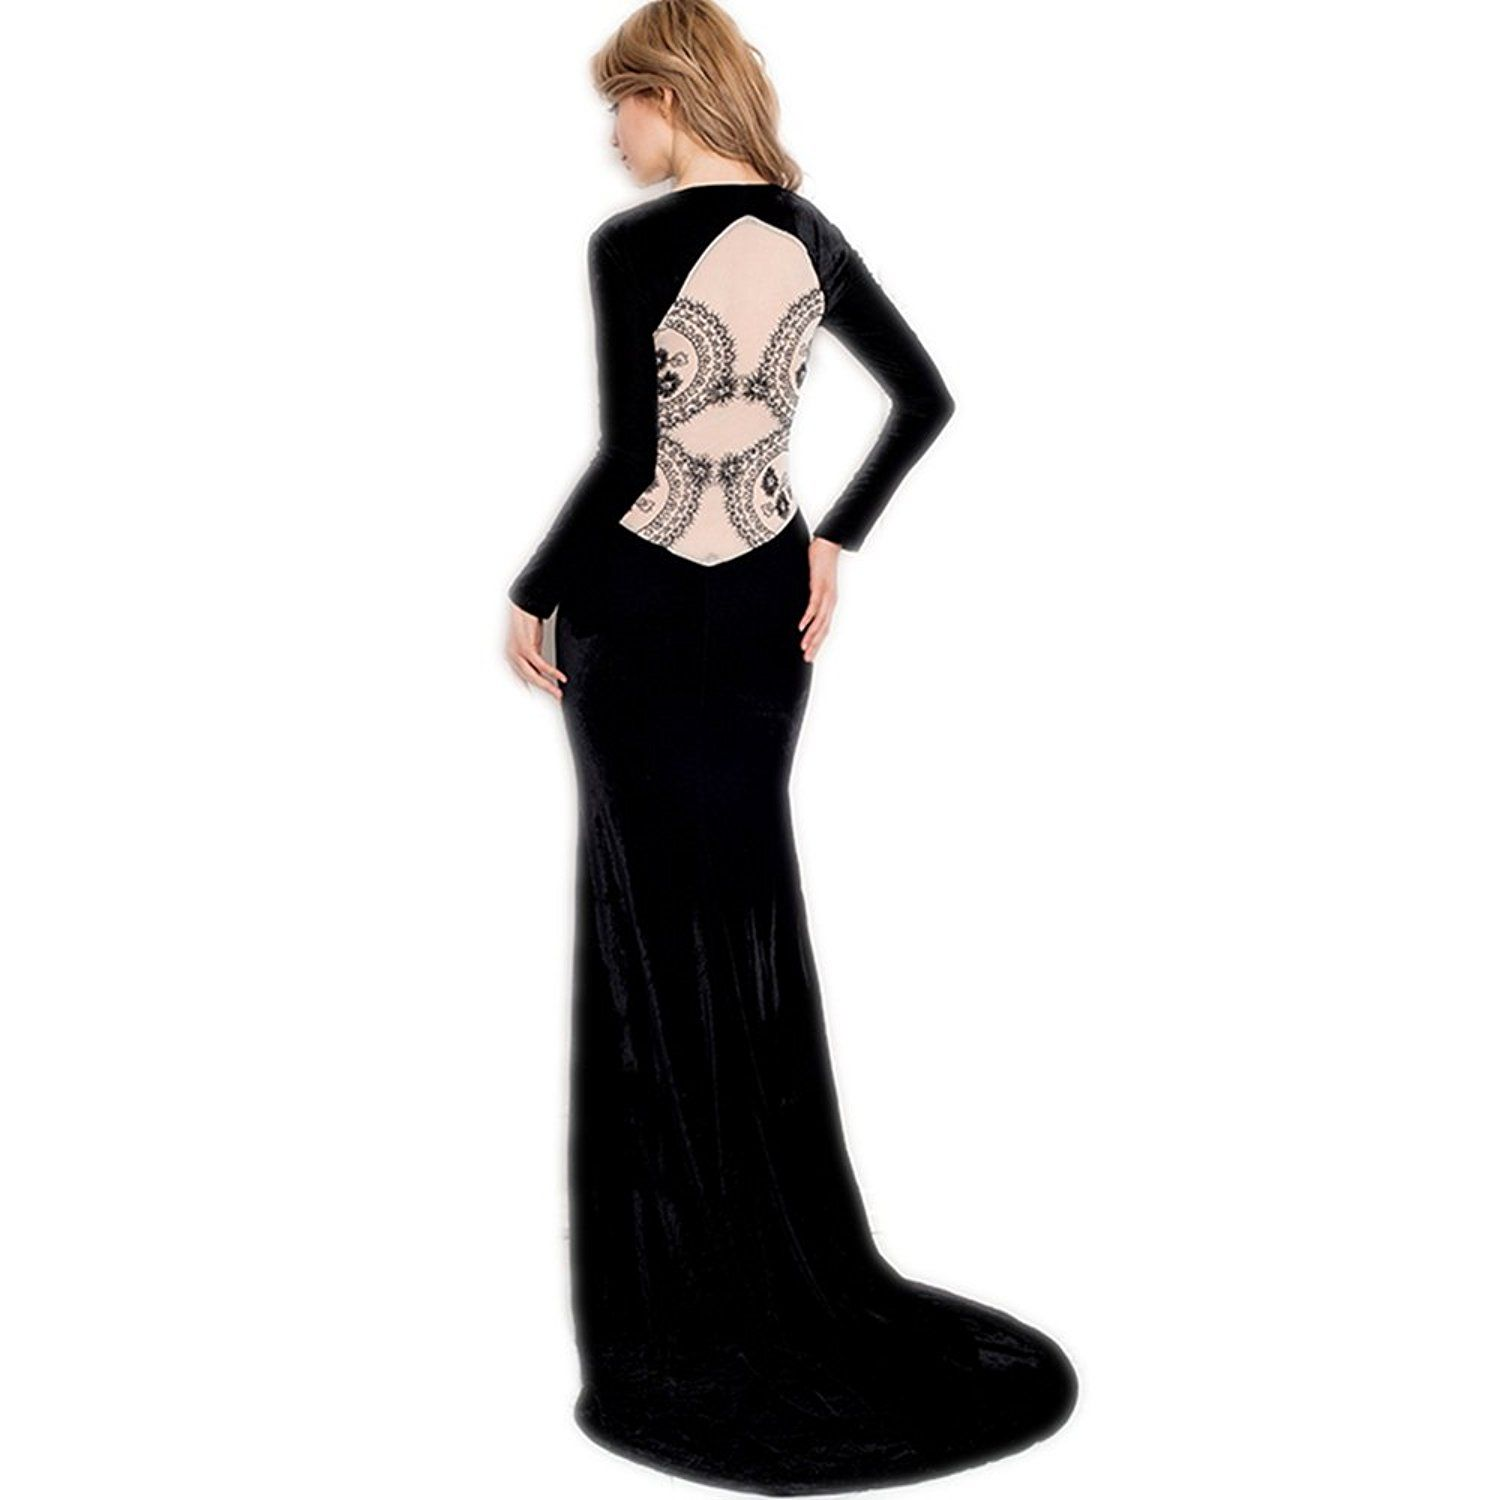 Maxde sexy pleuche backless lace long formal evening velvet dress